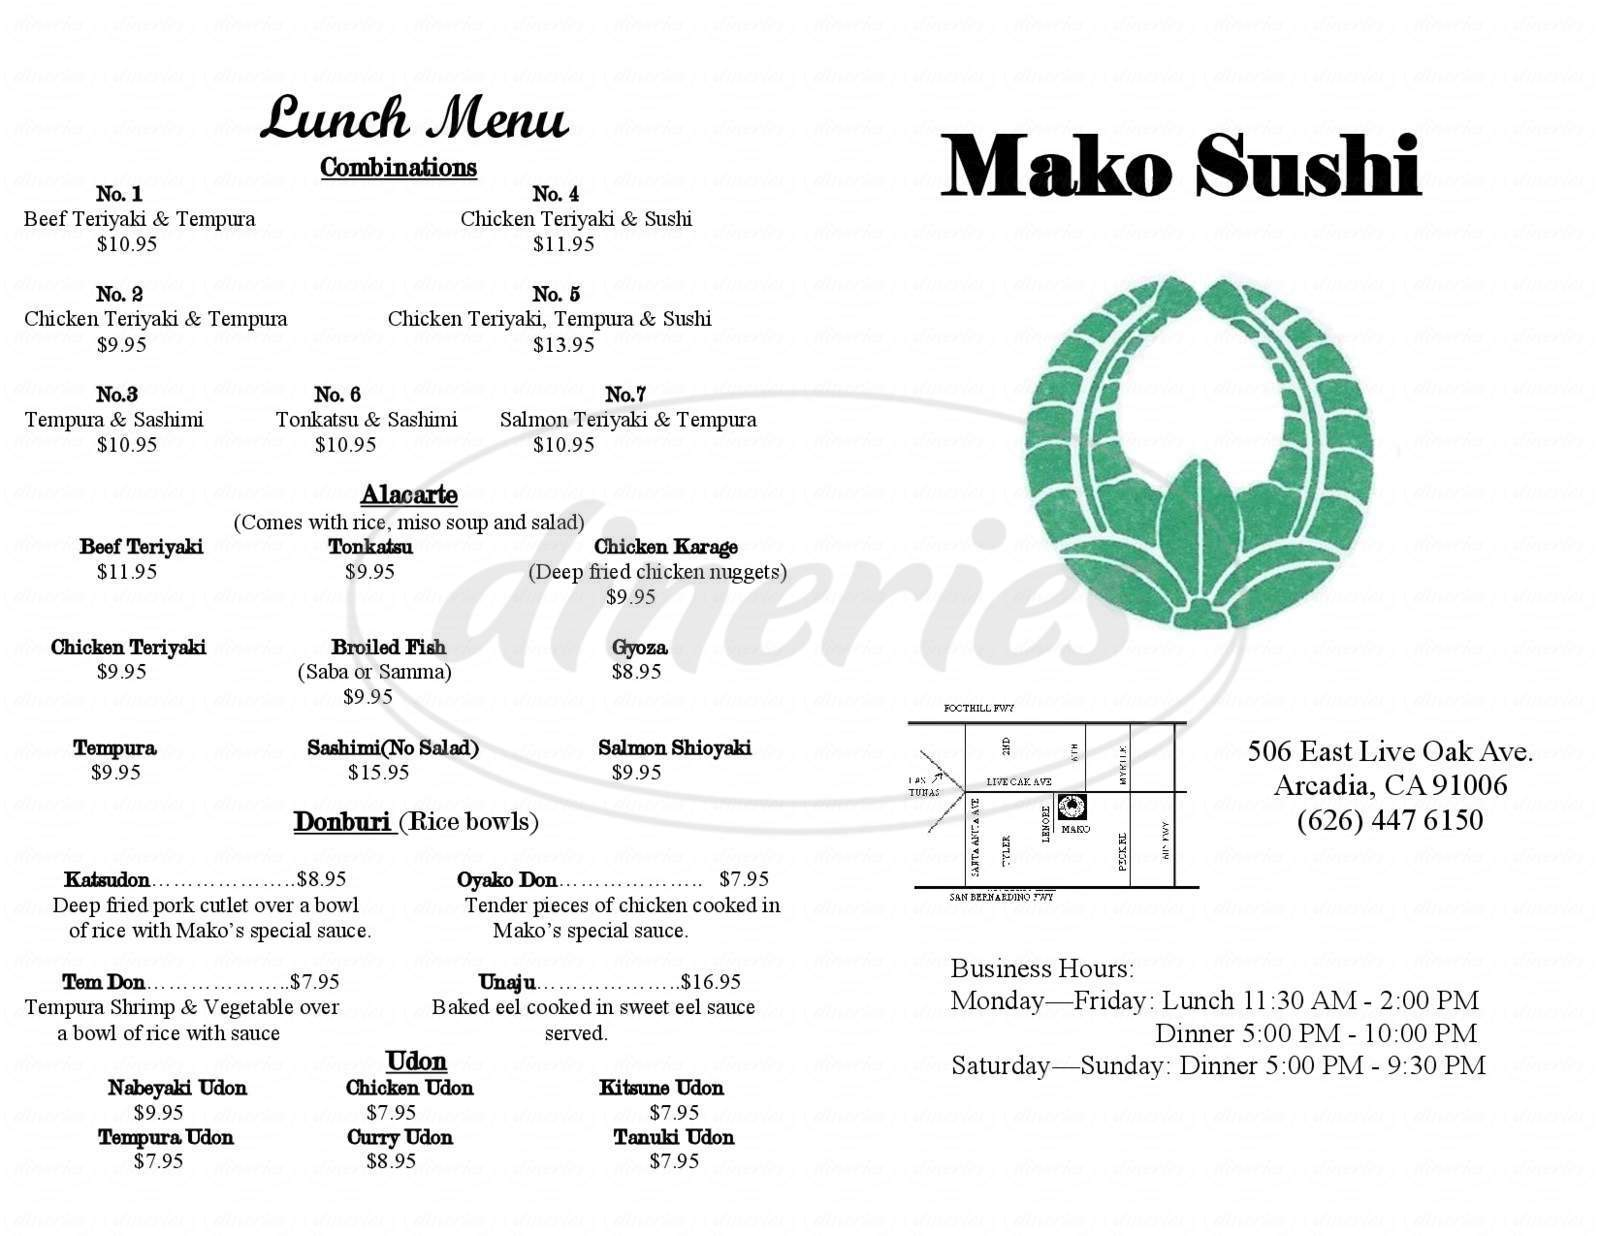 menu for Mako Sushi